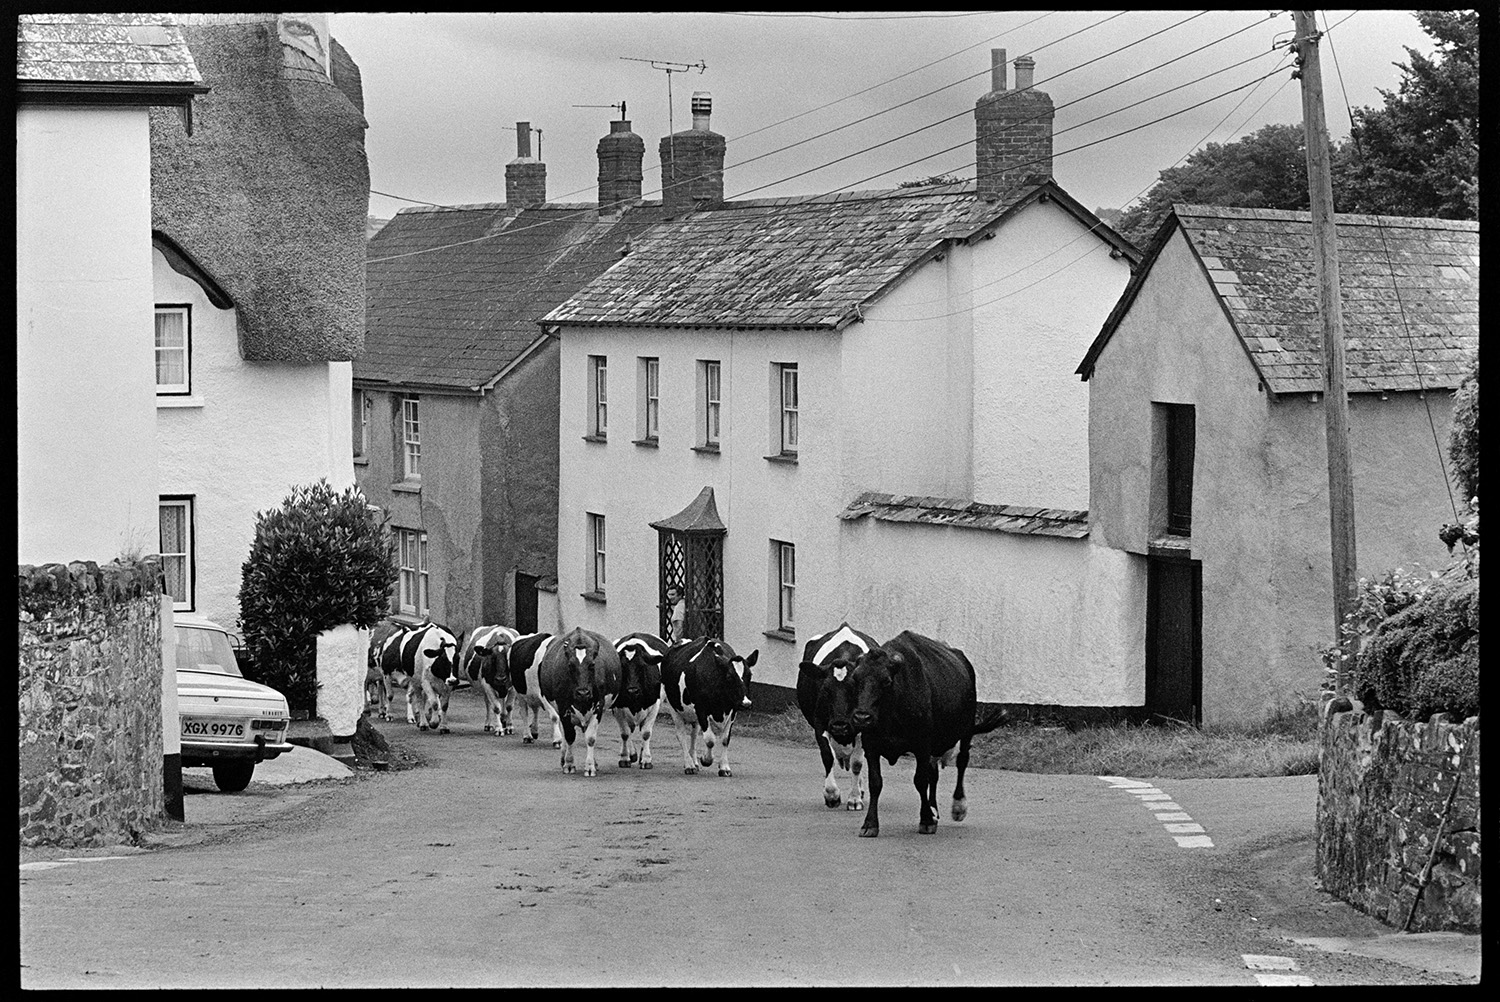 Milking herd of cows being driven through village behind tractor. <br /> [A dairy herd of cows being herded through a street in Exbourne. A person is watching them from their porch outside their house.]